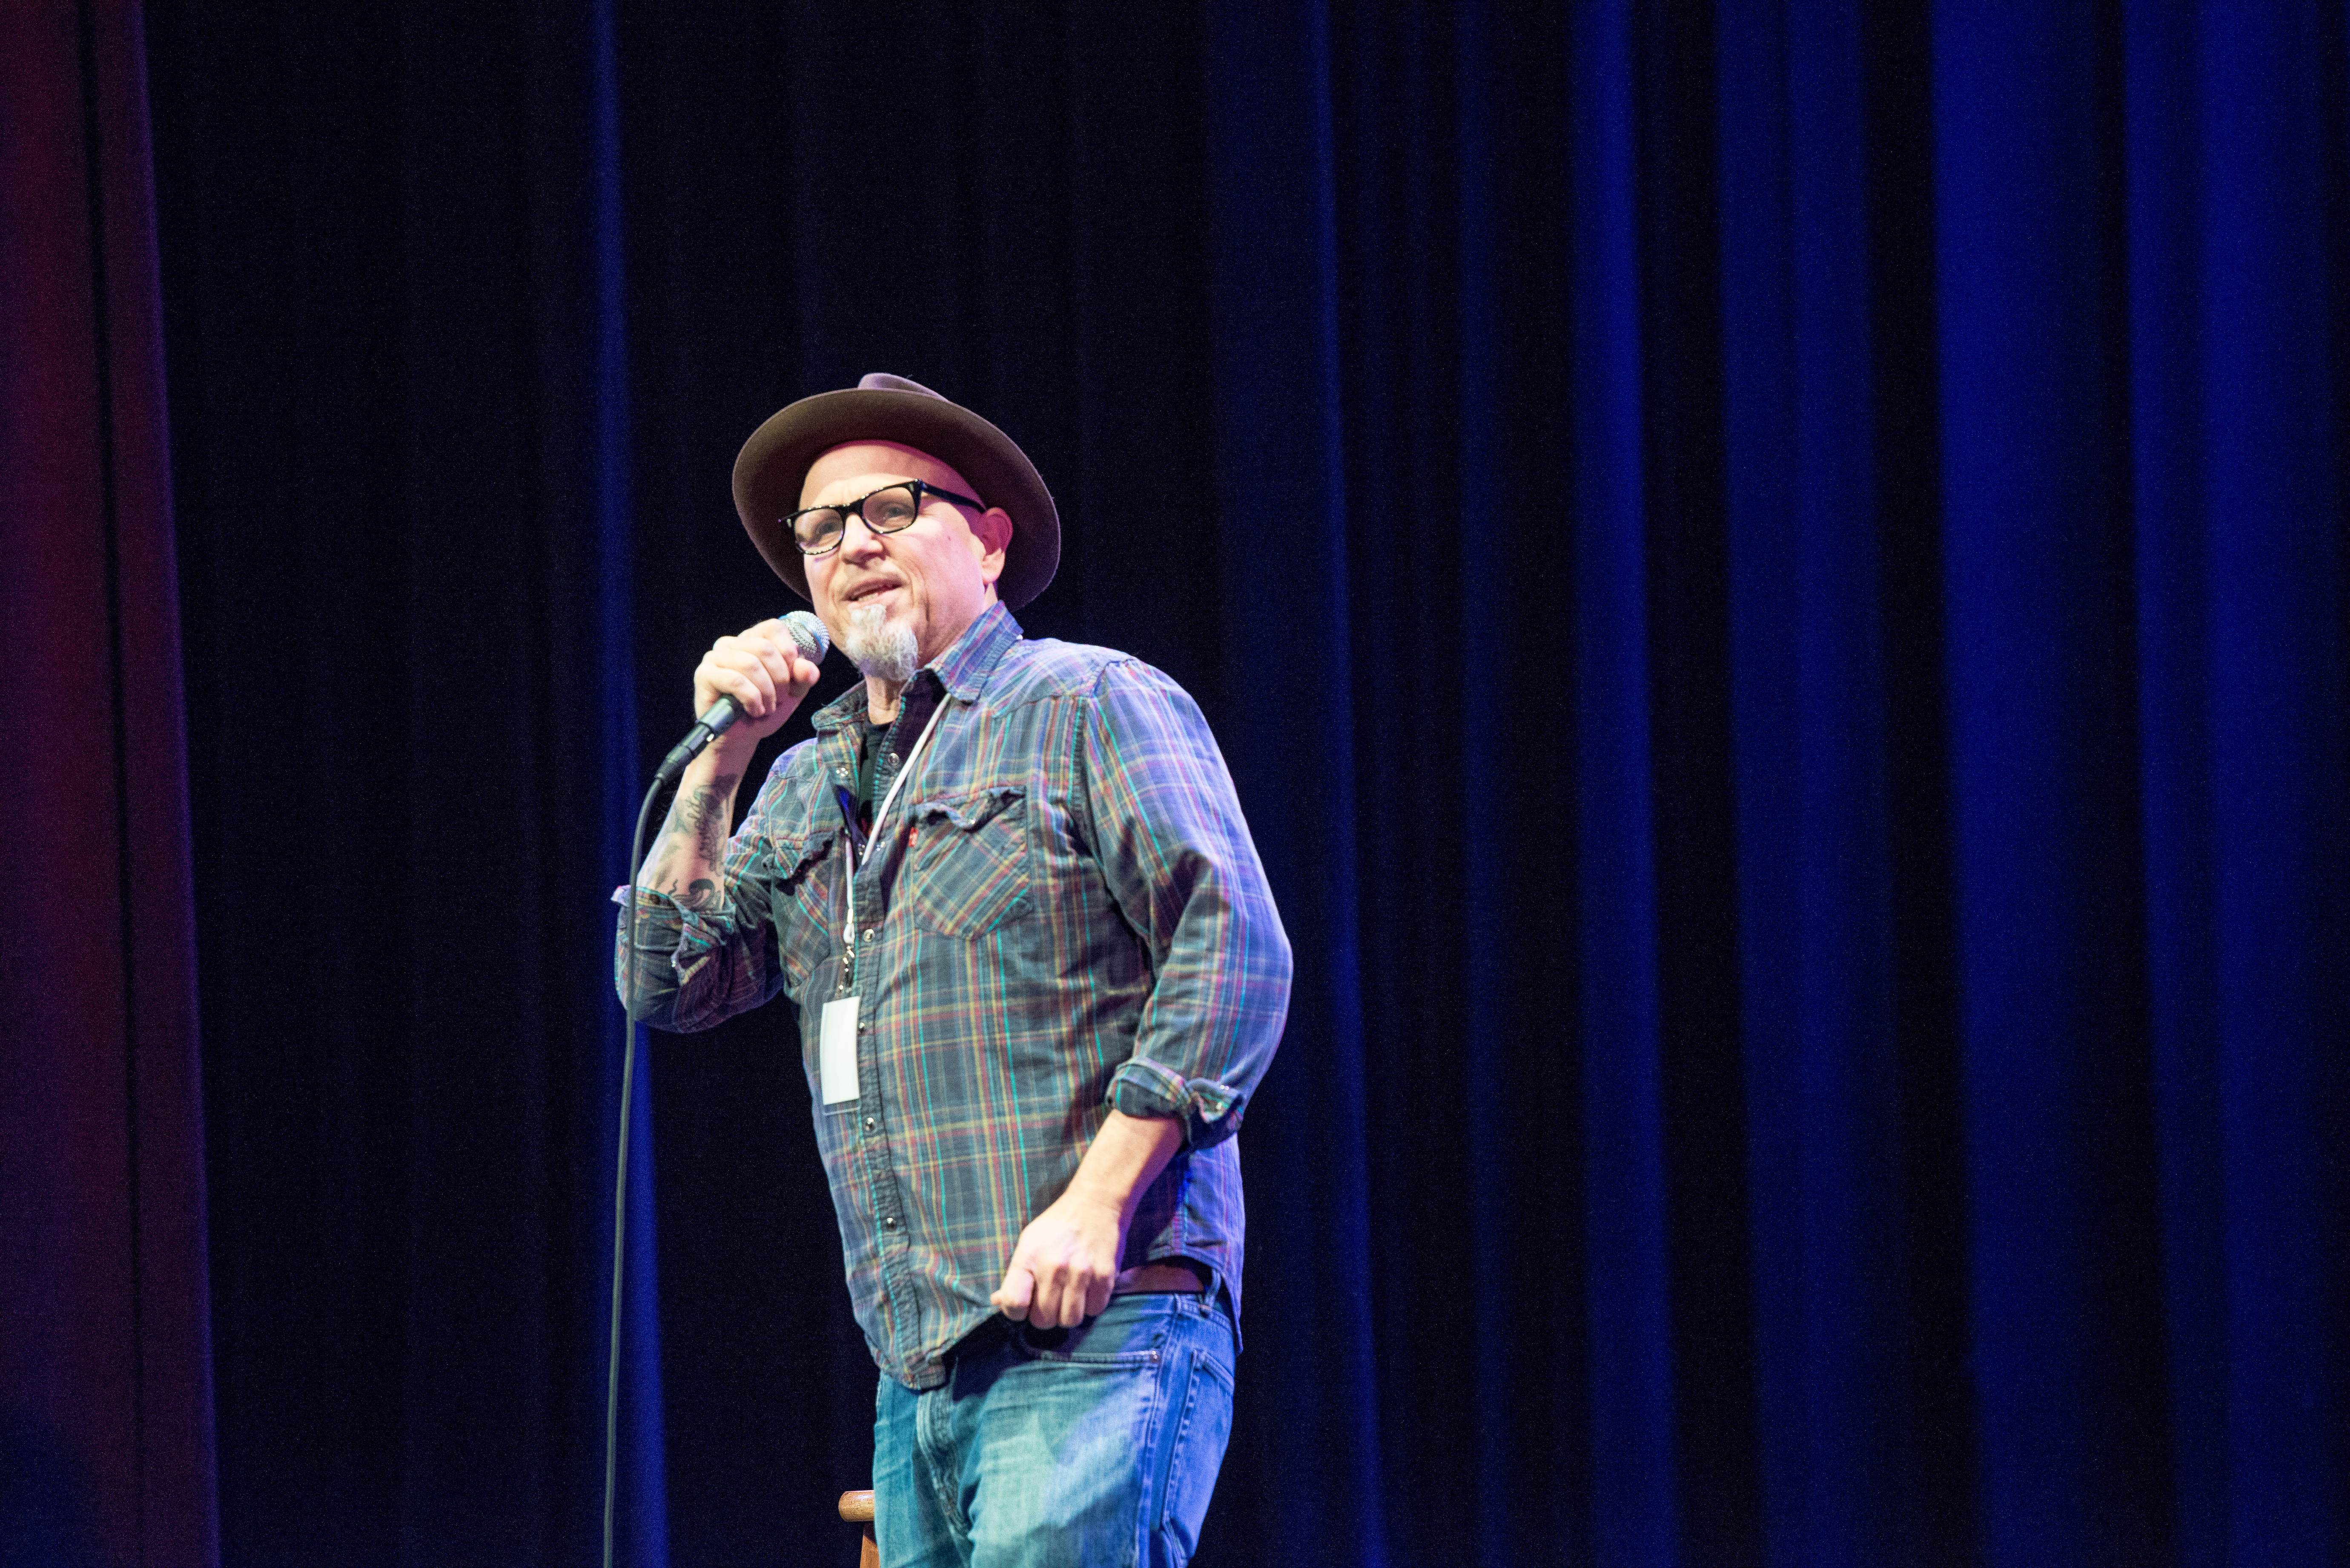 The Legendary Bobcat Goldthwait